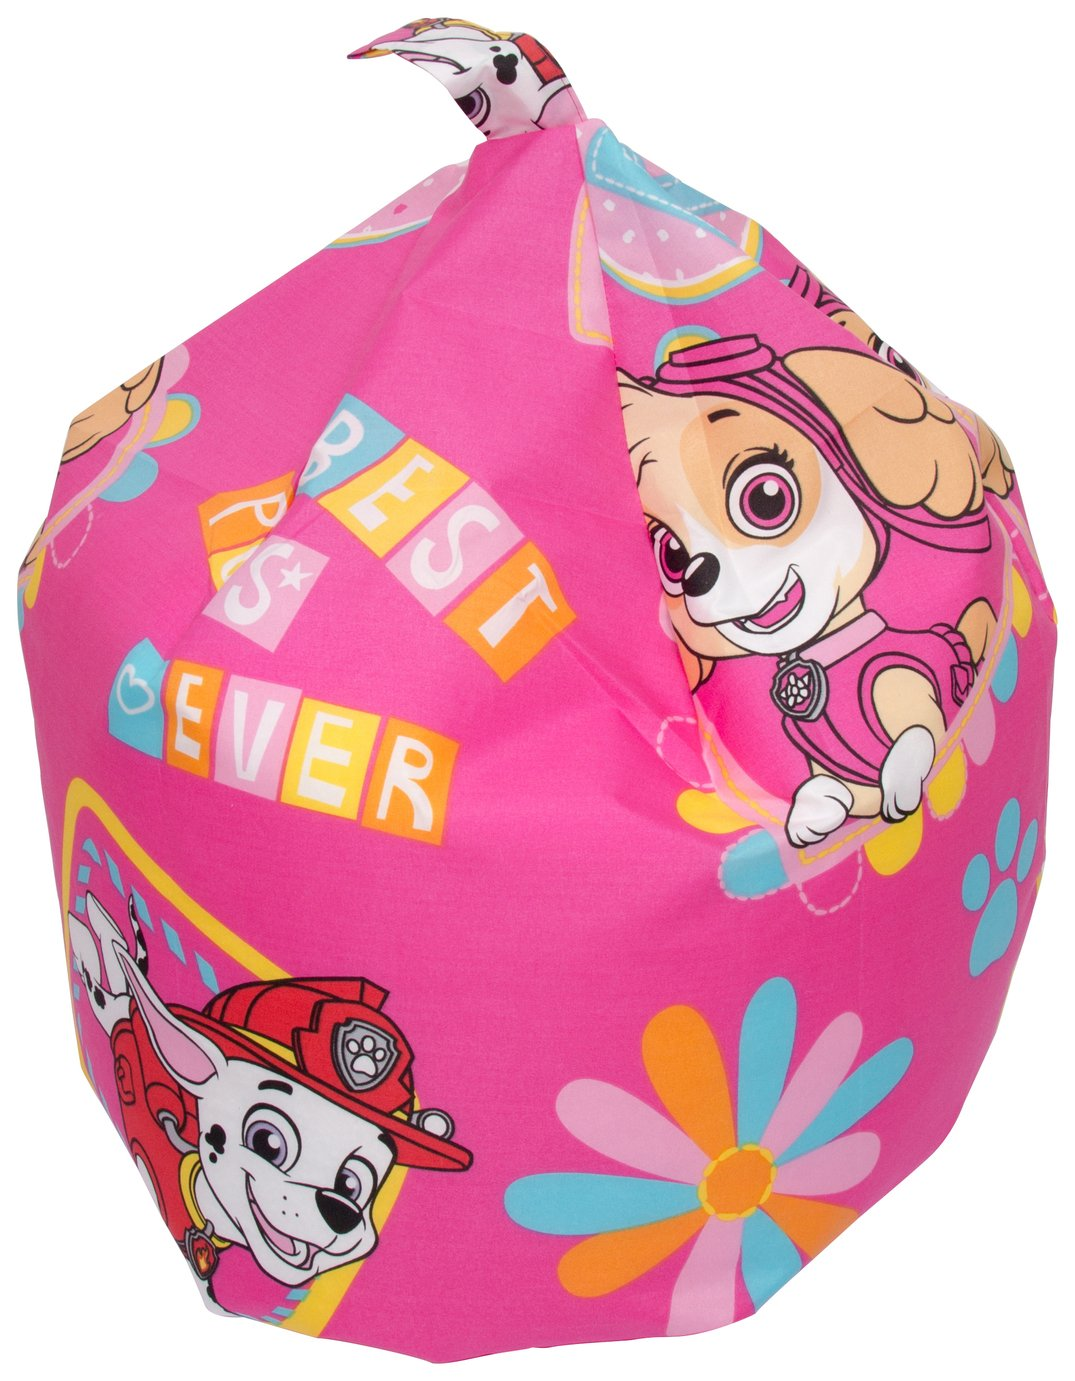 Paw Patrol Forever Pink Beanbag review